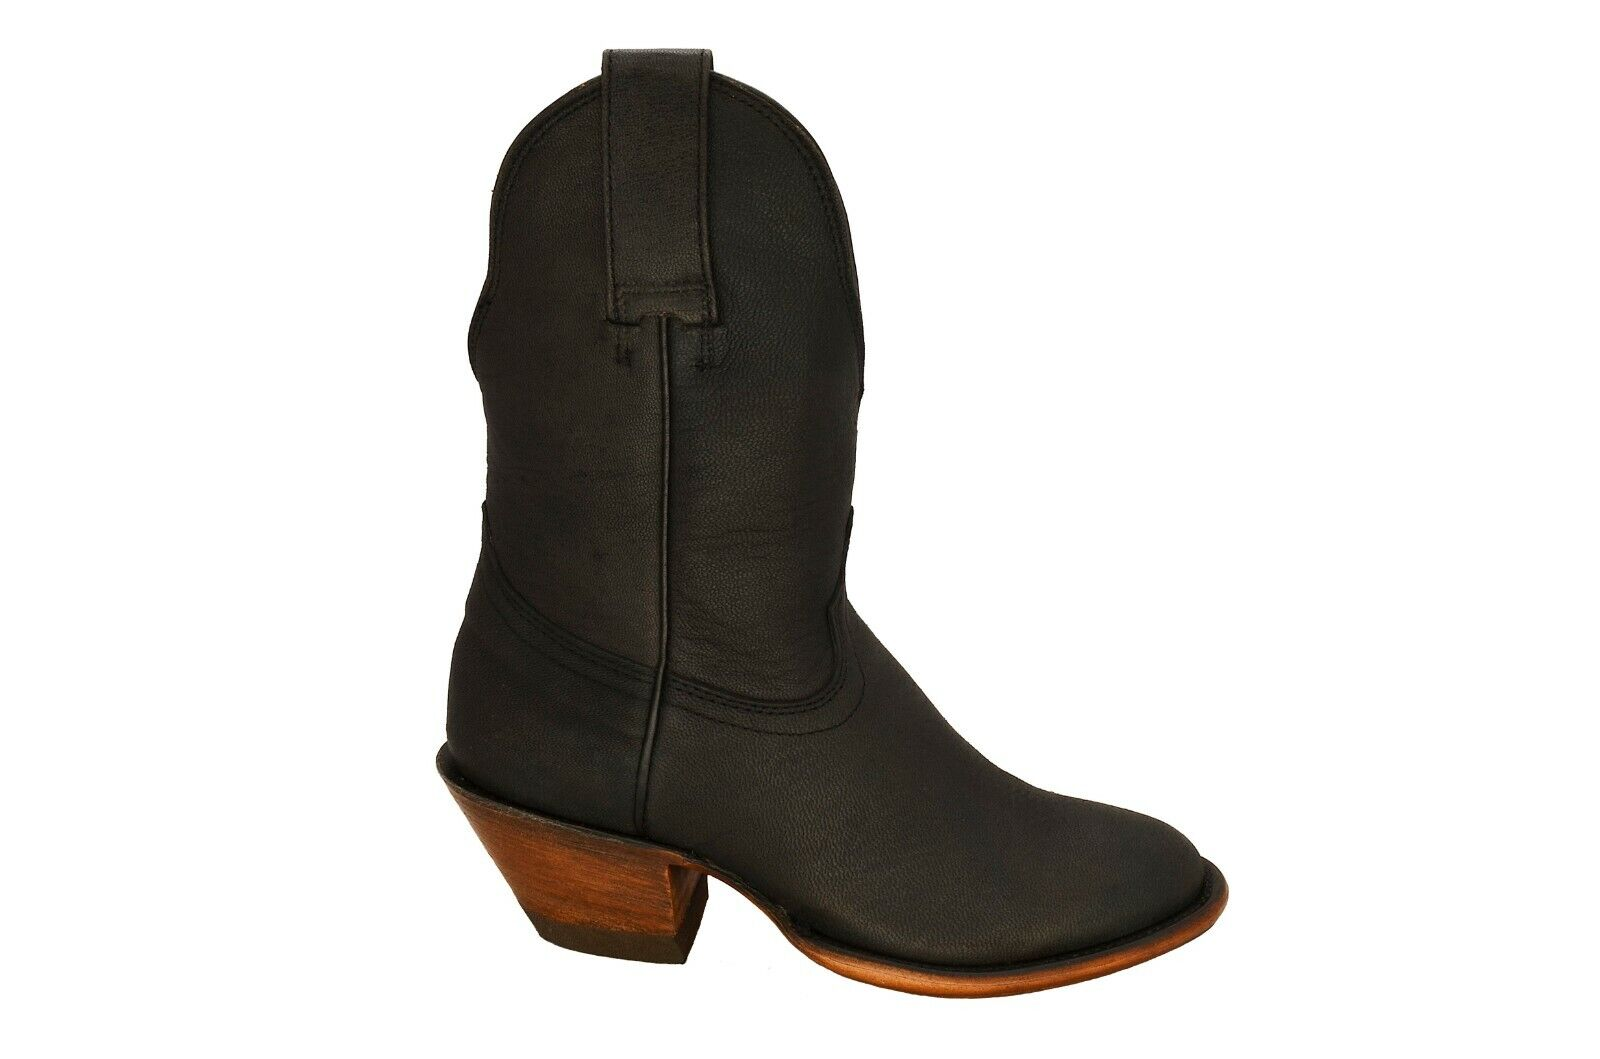 New Women's Round Toe Black Leather Mid Boots REDHAWK 7608 Size 5-10 (B, M)